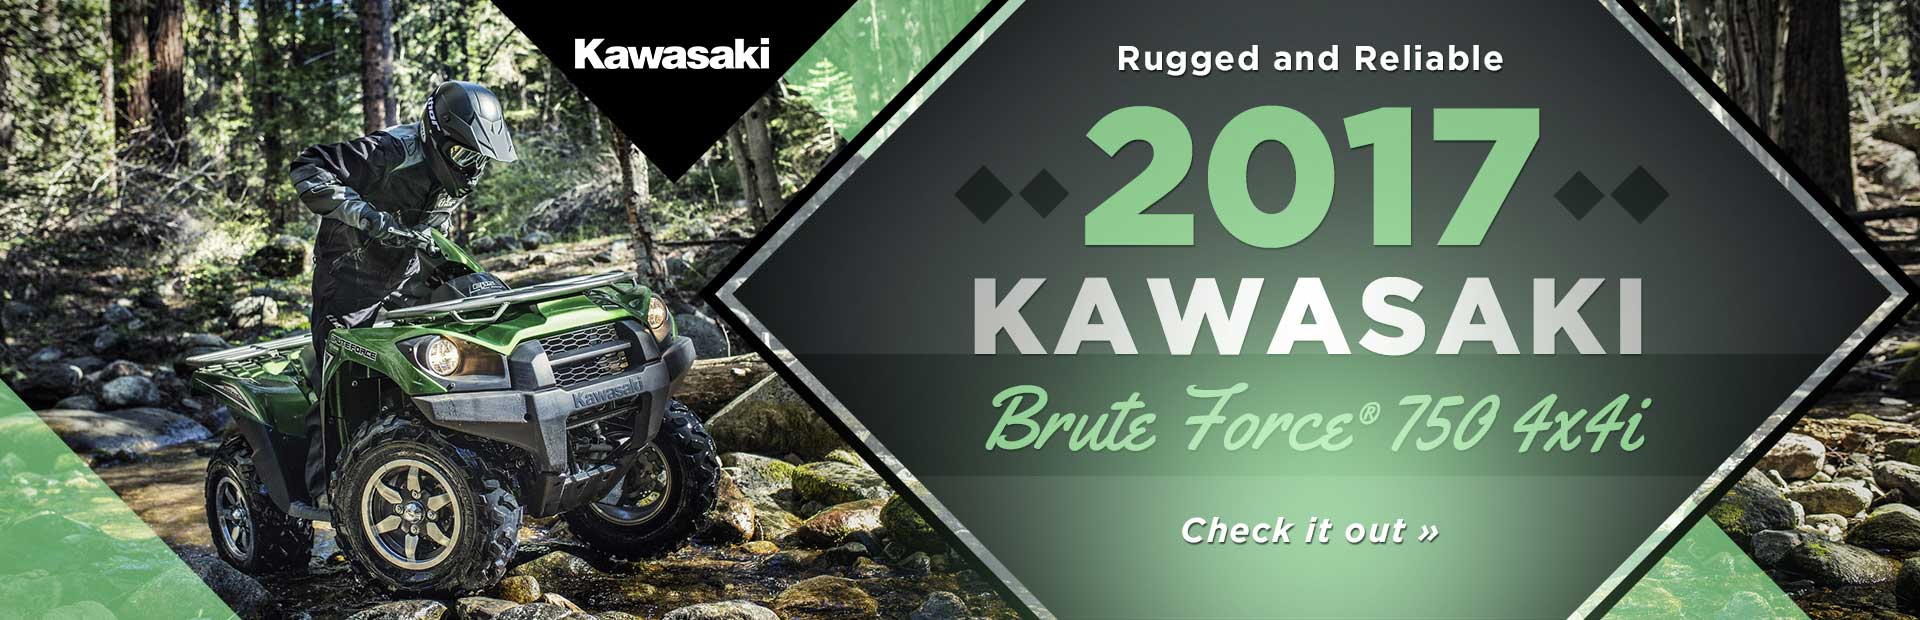 2017 Kawasaki Brute Force® 750 4x4i: Click here for details.